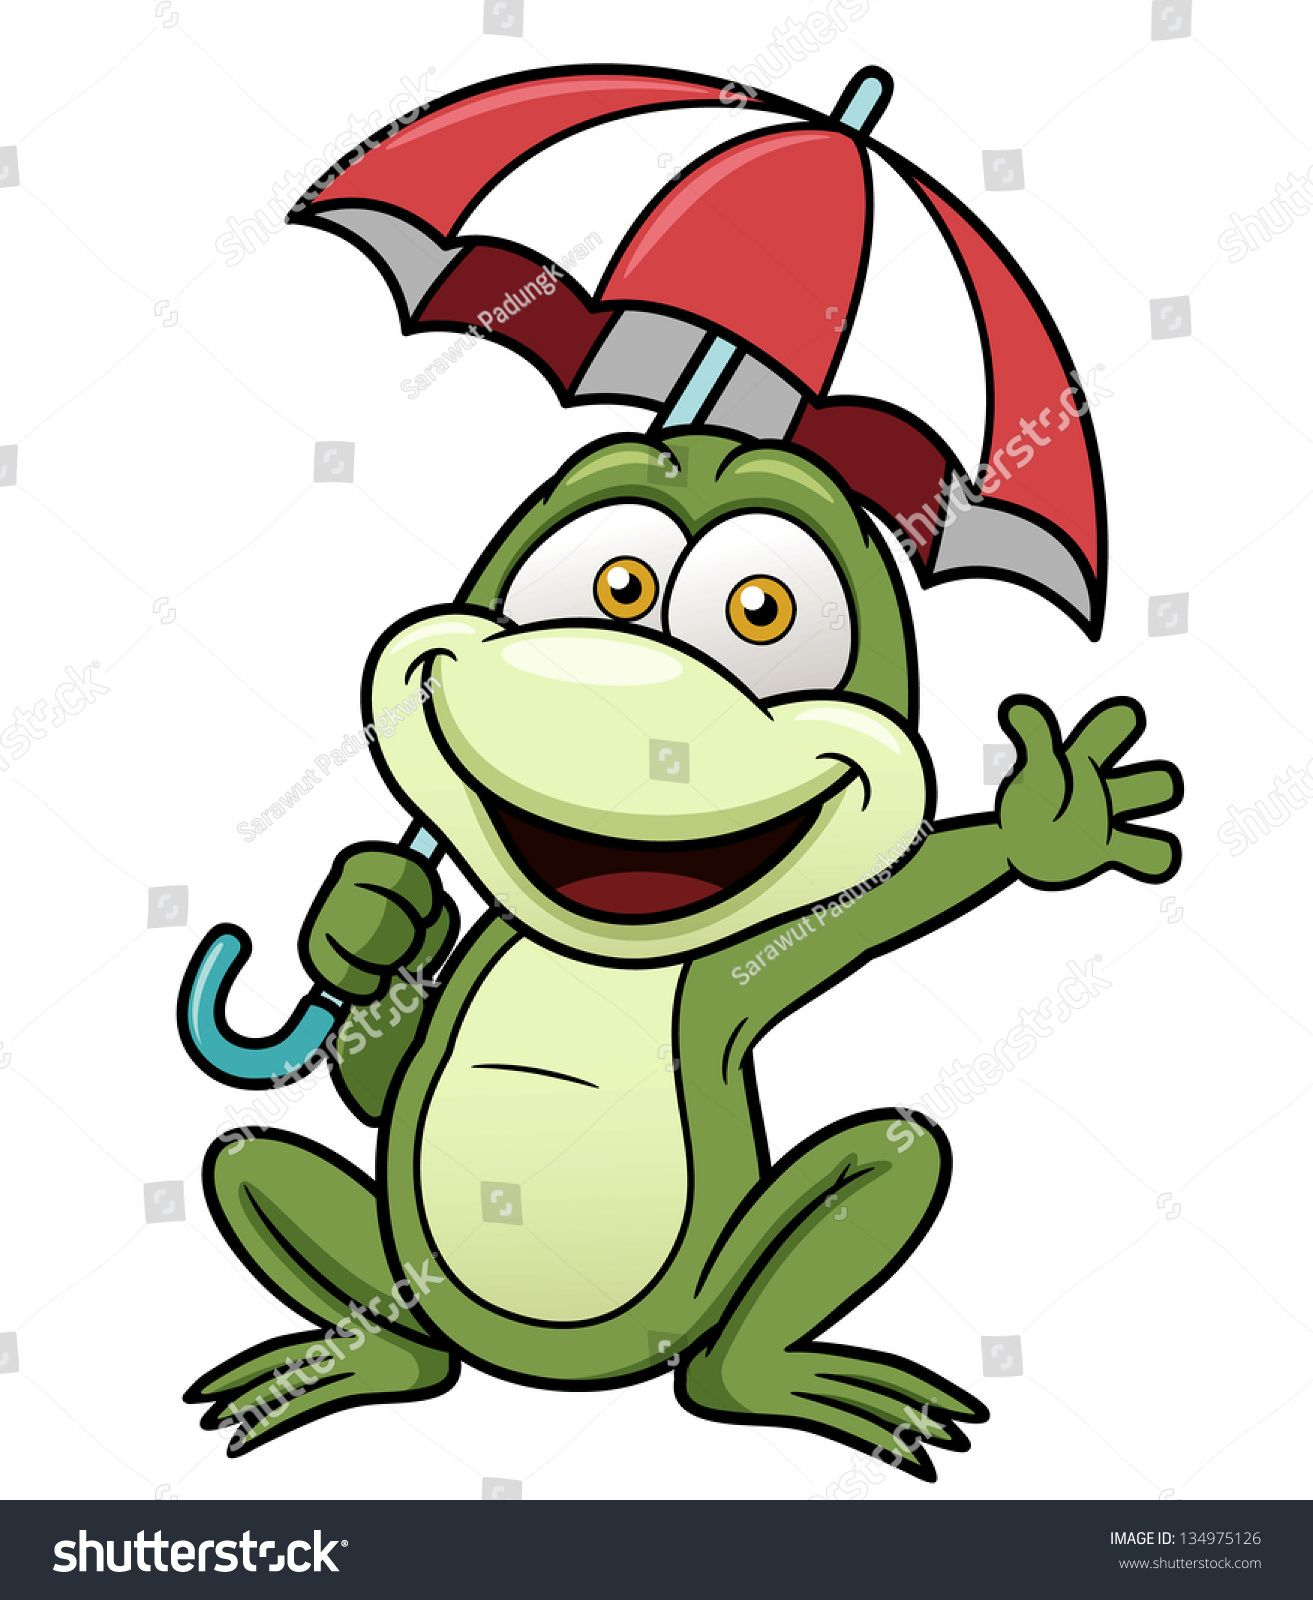 Vector illustration of Frog holding umbrella | AA...KIDS DRAWINGS in ...